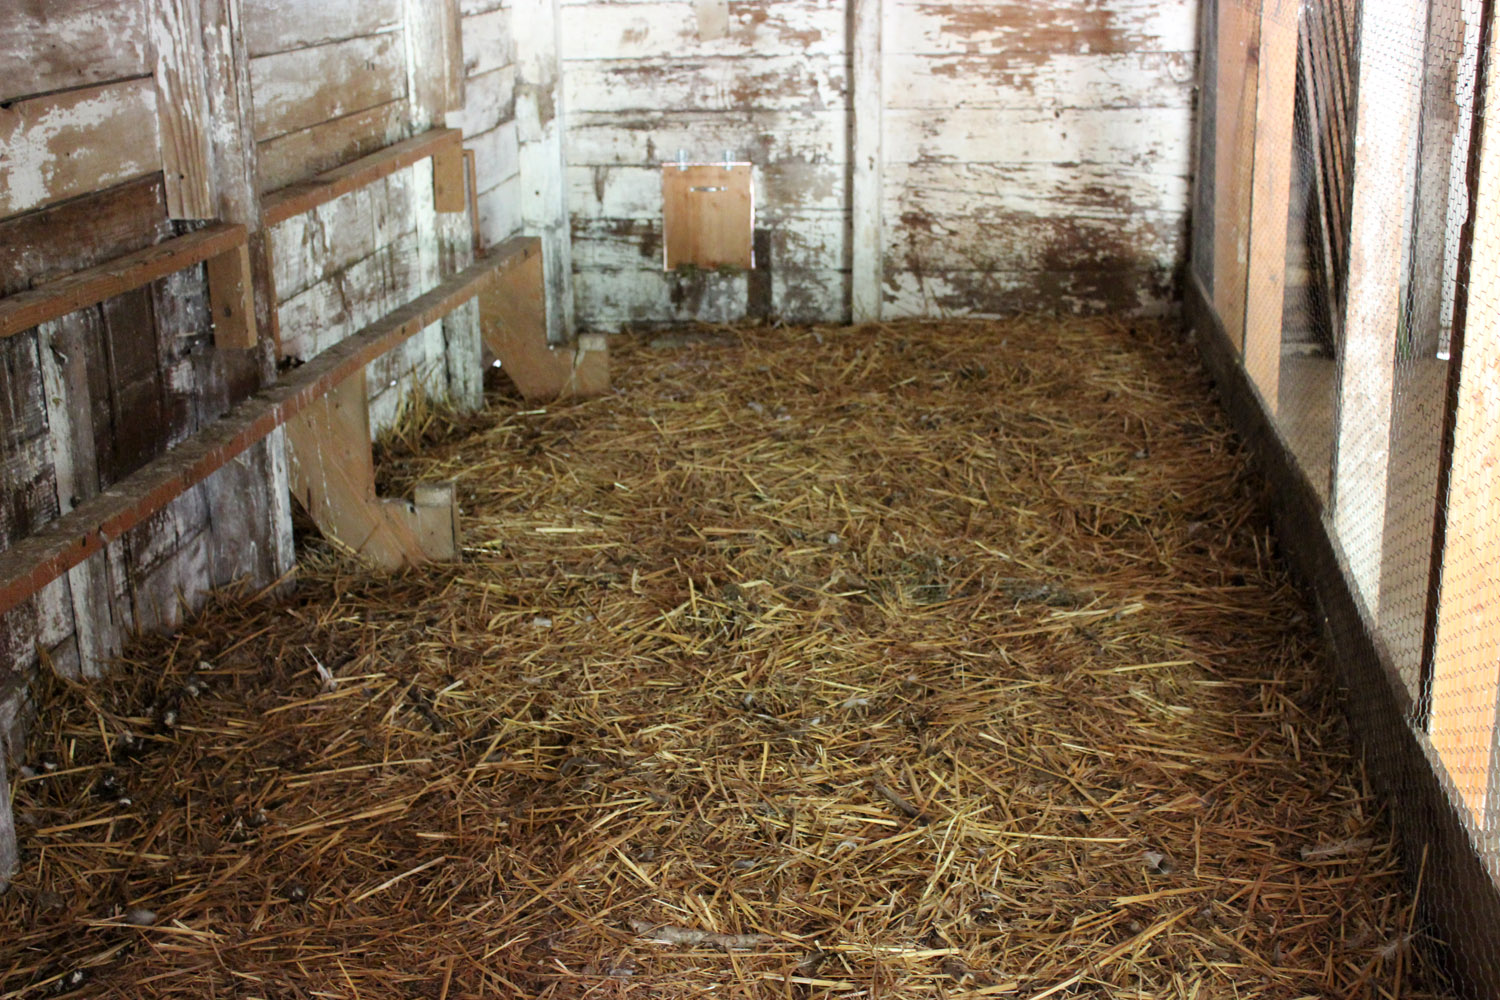 Chicken Coop Bedding: Using Pelleted Shavings